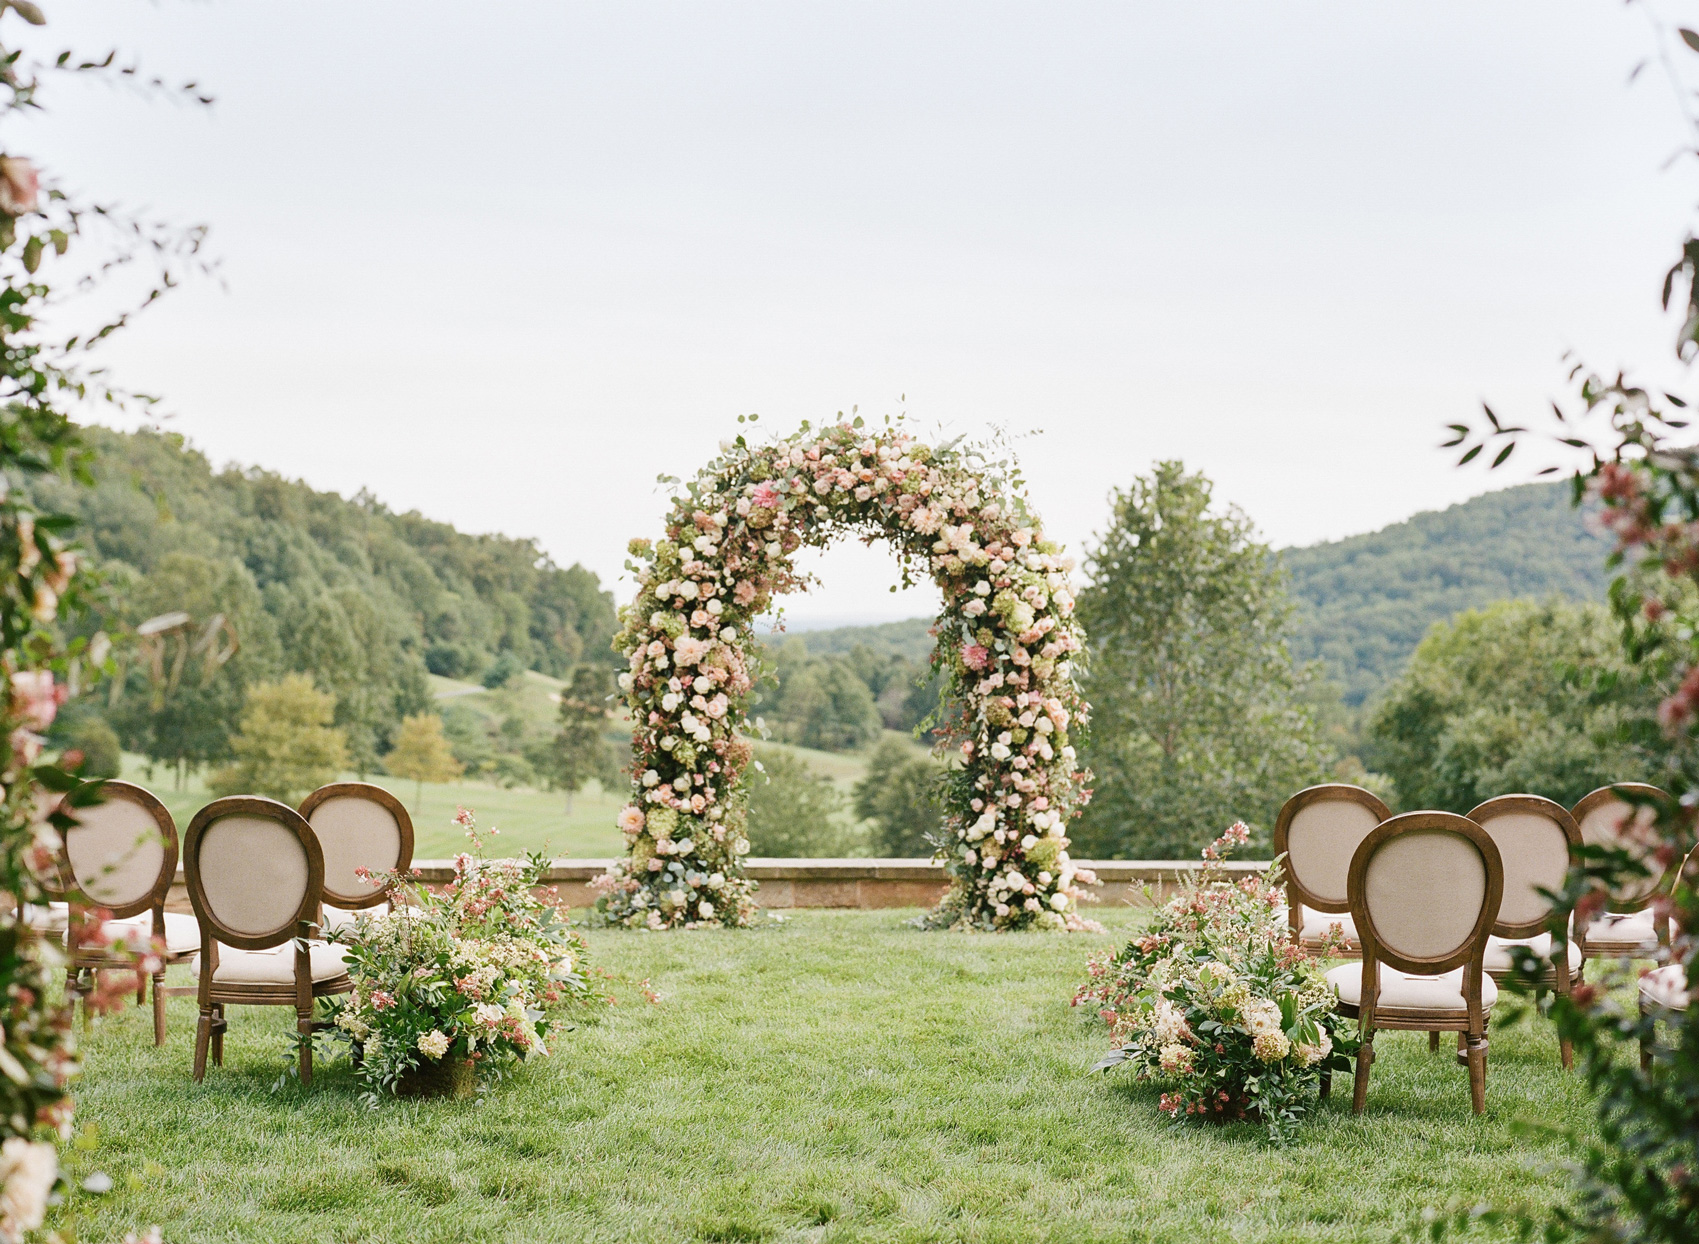 Wedding ceremony arch decorated with pink flowers and greenery